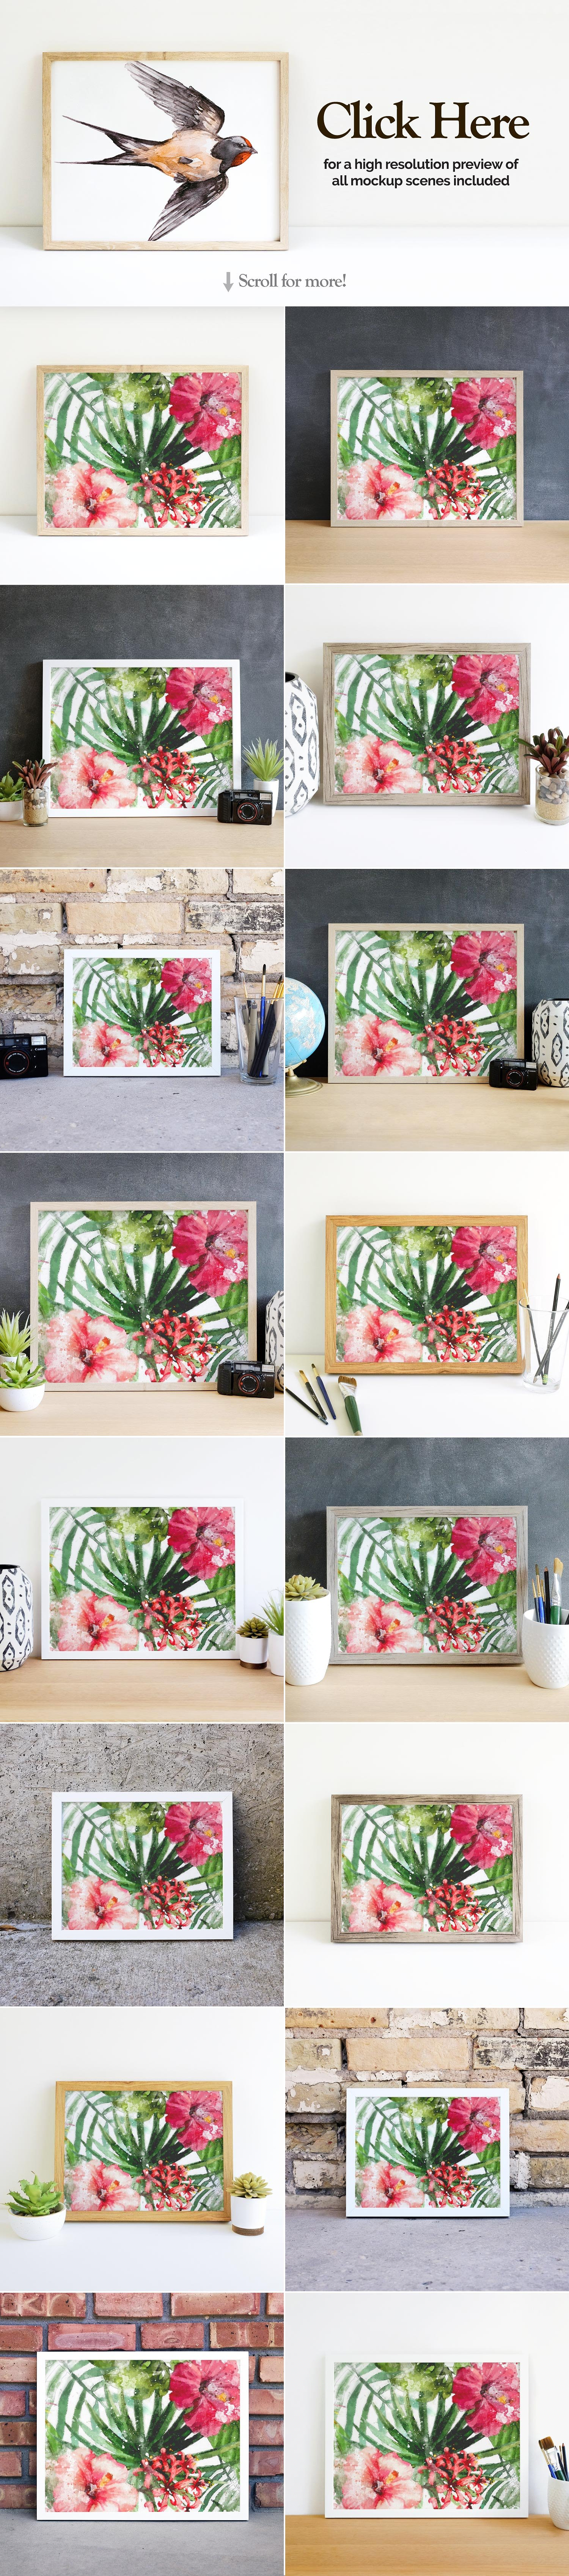 Print and Poster Mockups for Etsy and More! example image 3